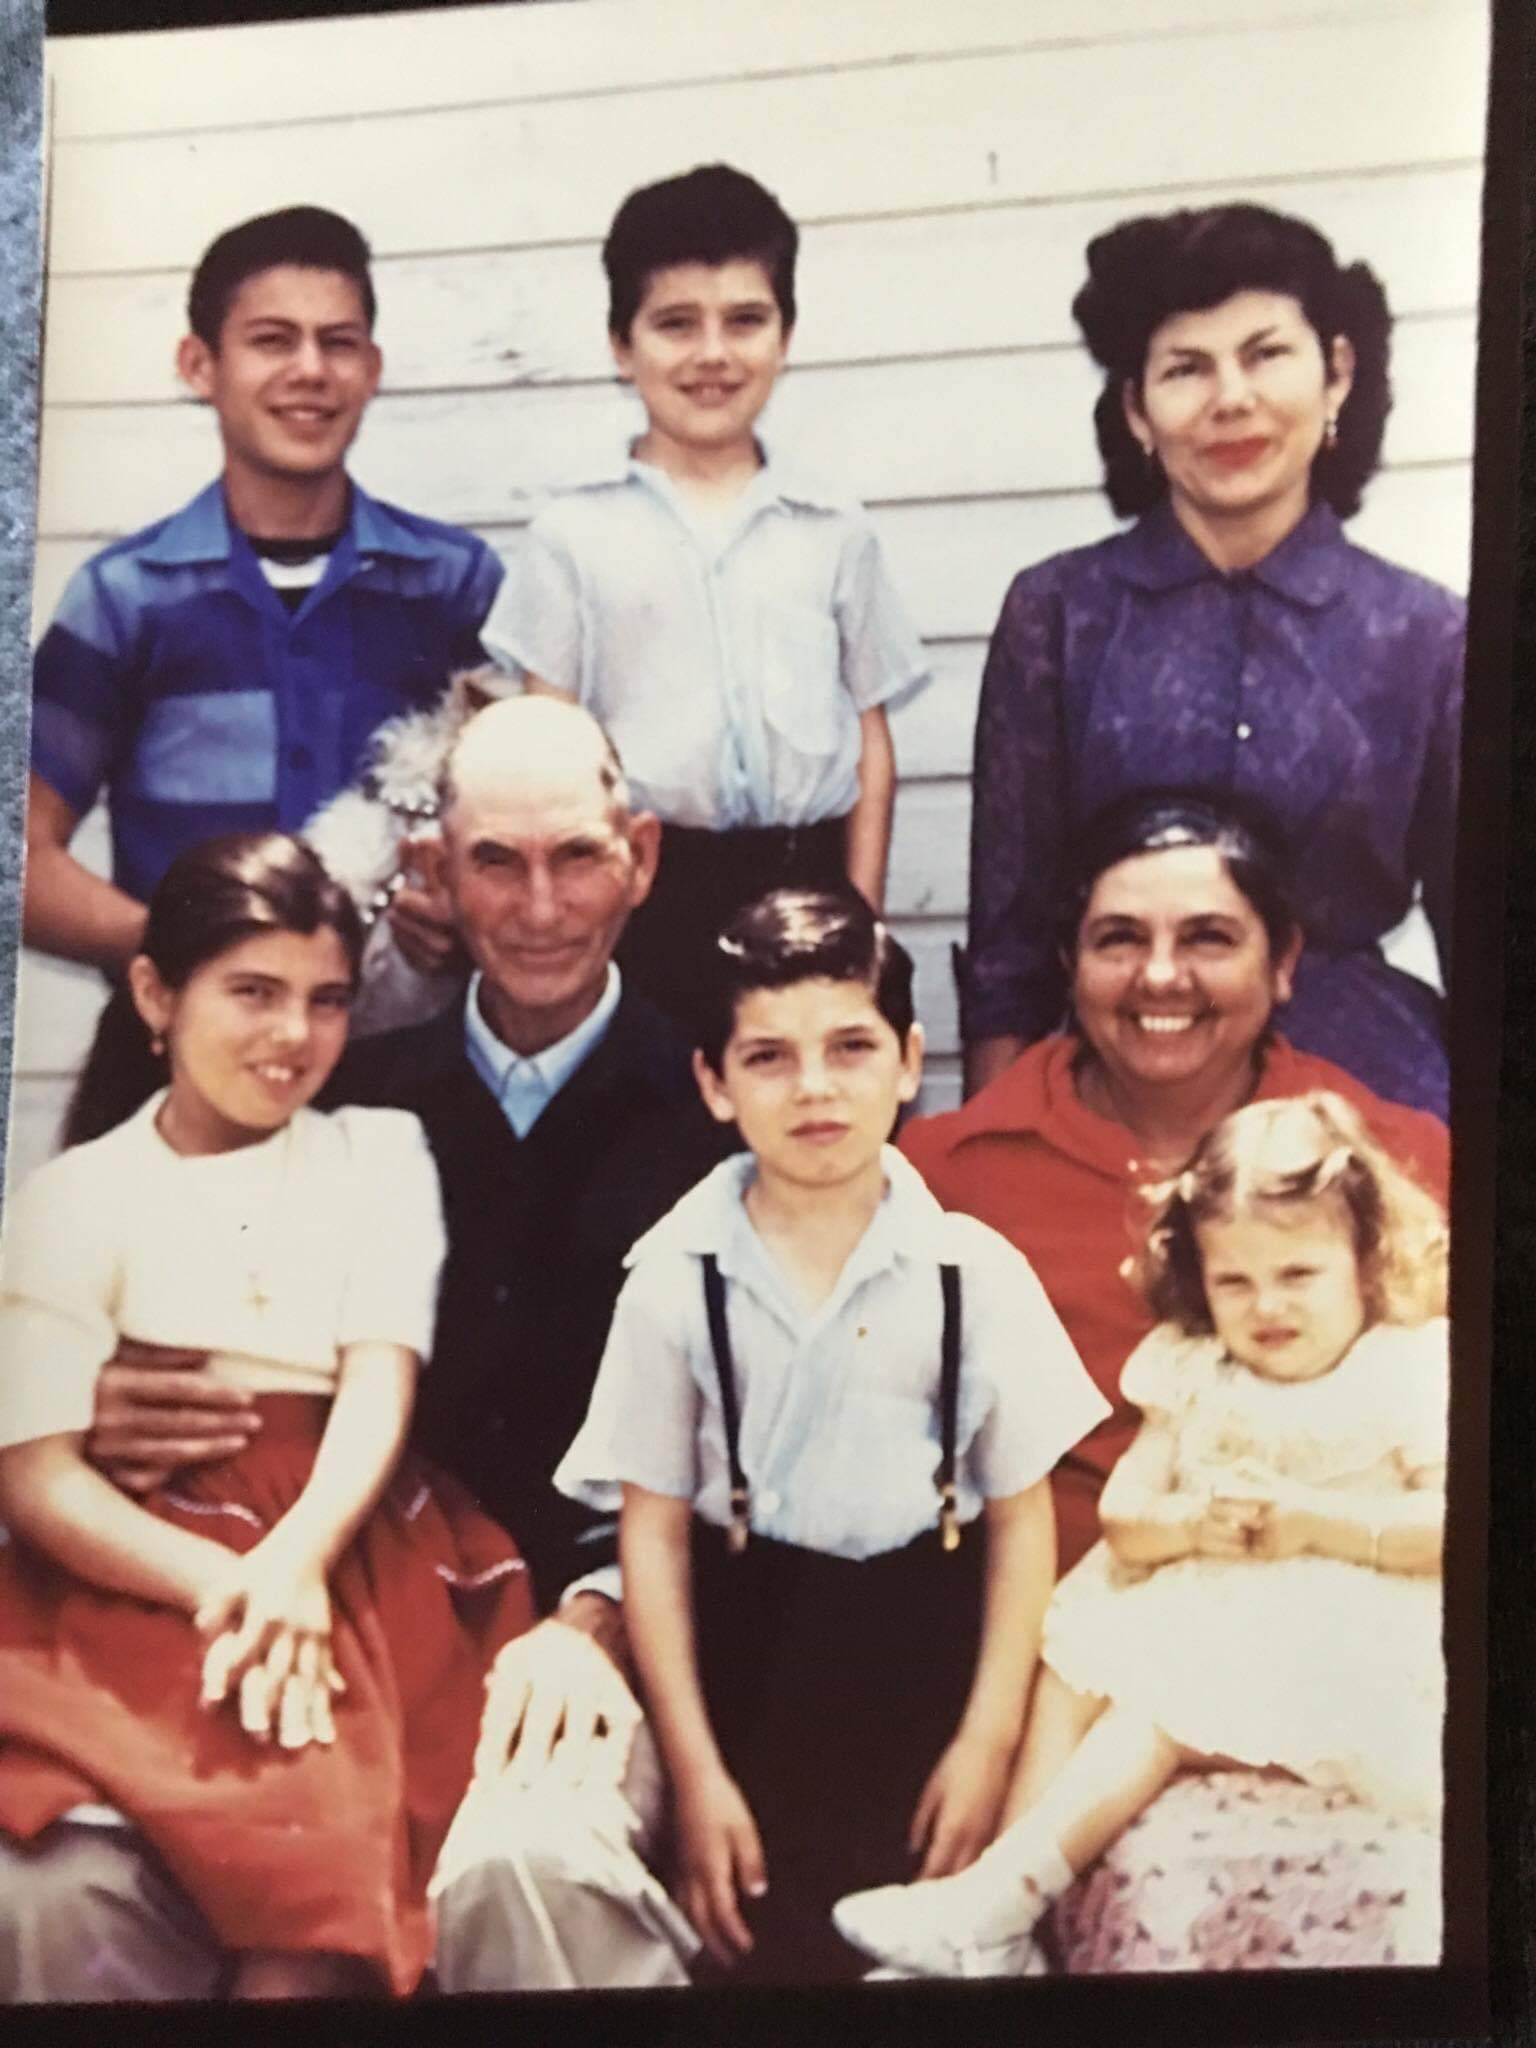 My father's unenthused face looks exactly the same now as it did when he wore suspenders. Mid-1950s